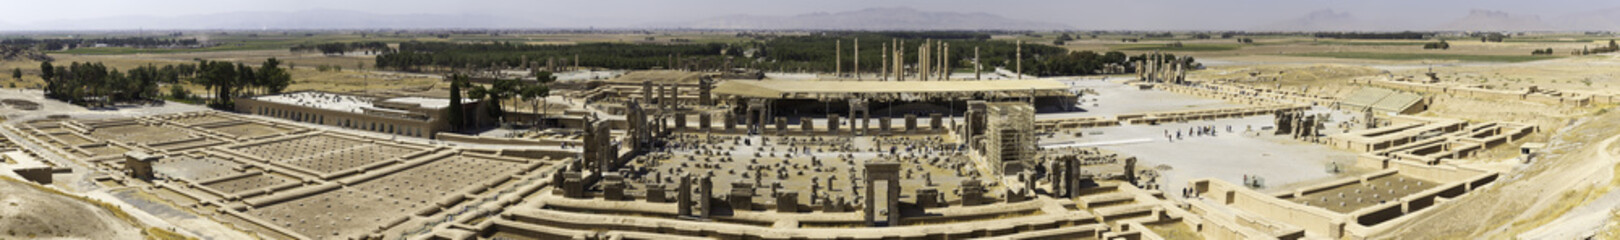 Panoramic view of Persepolis in northern Shiraz, Iran. Persepolis has led to its designation as a UNESCO World Heritage Site.